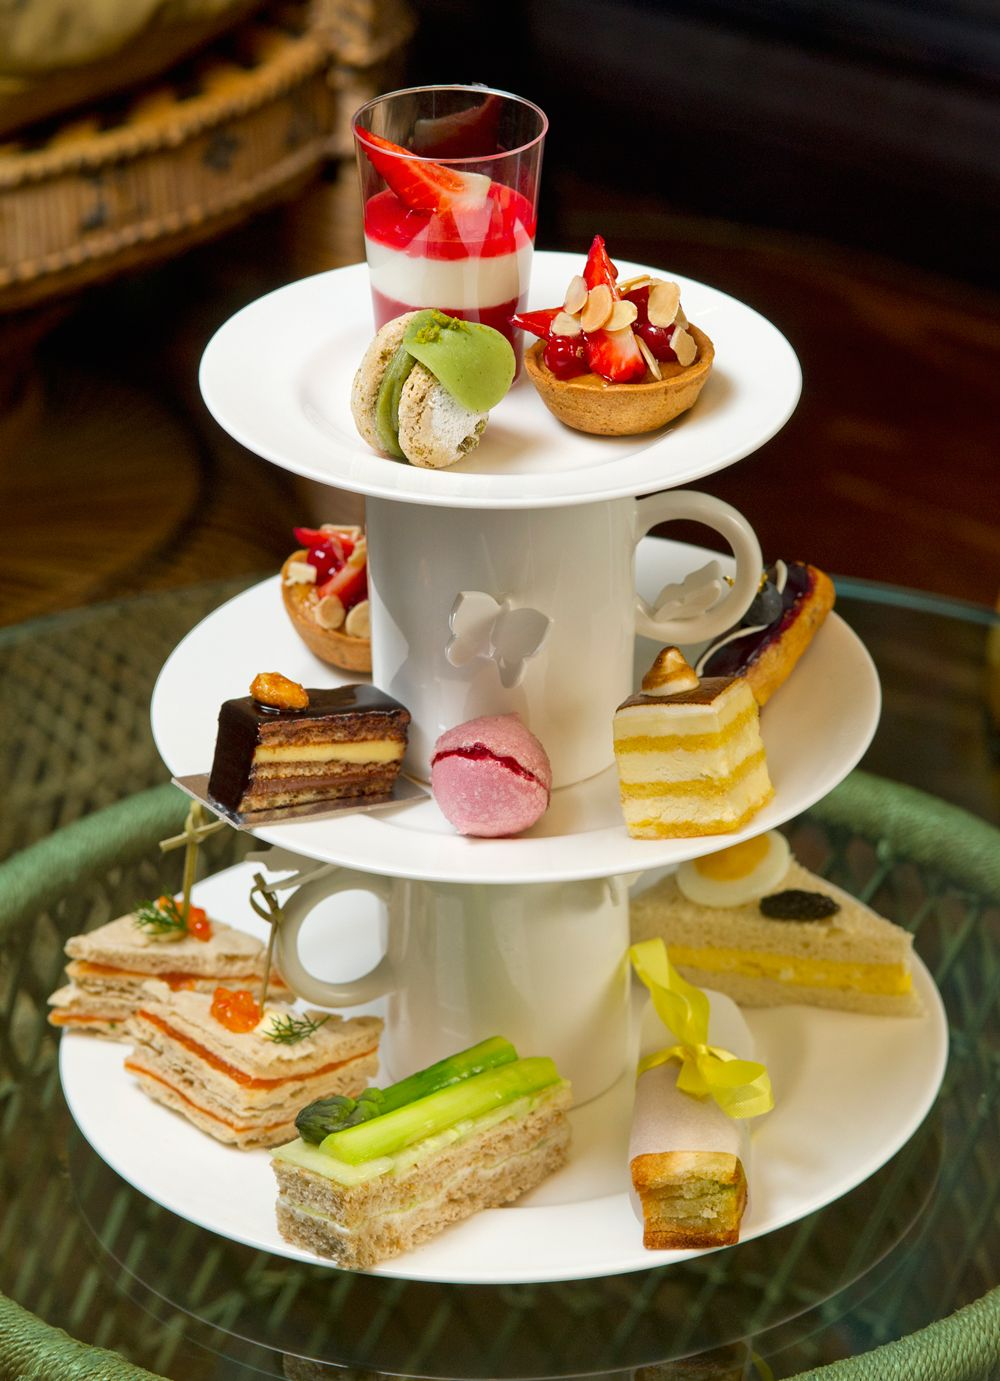 Glade Afternoon Tea Simple White Plates and Cups makes